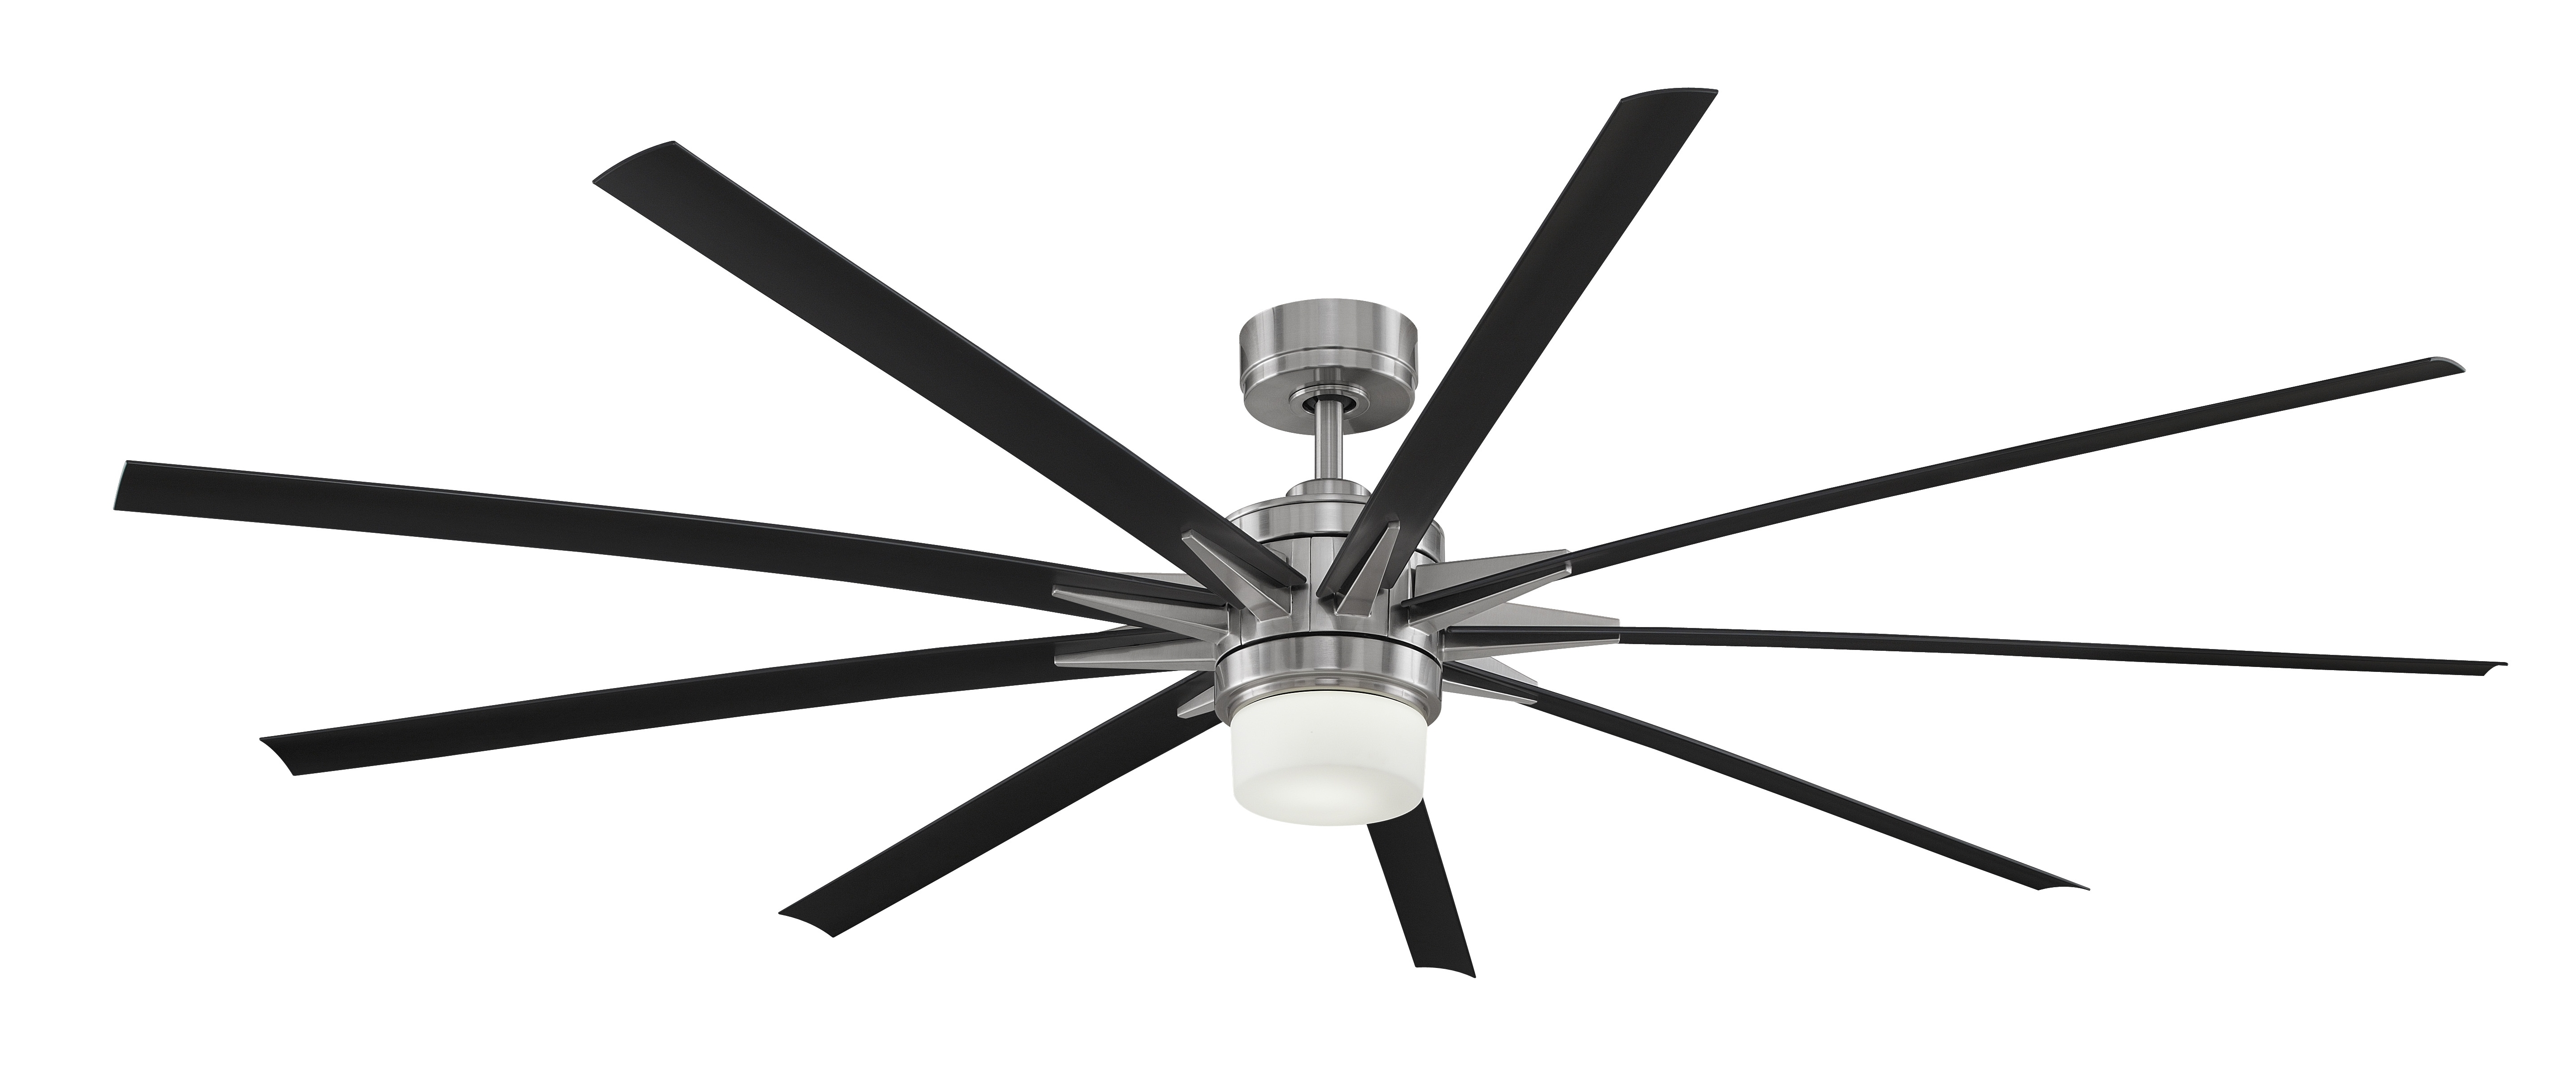 Canada In Well Known Outdoor Ceiling Fans With Aluminum Blades (View 15 of 20)